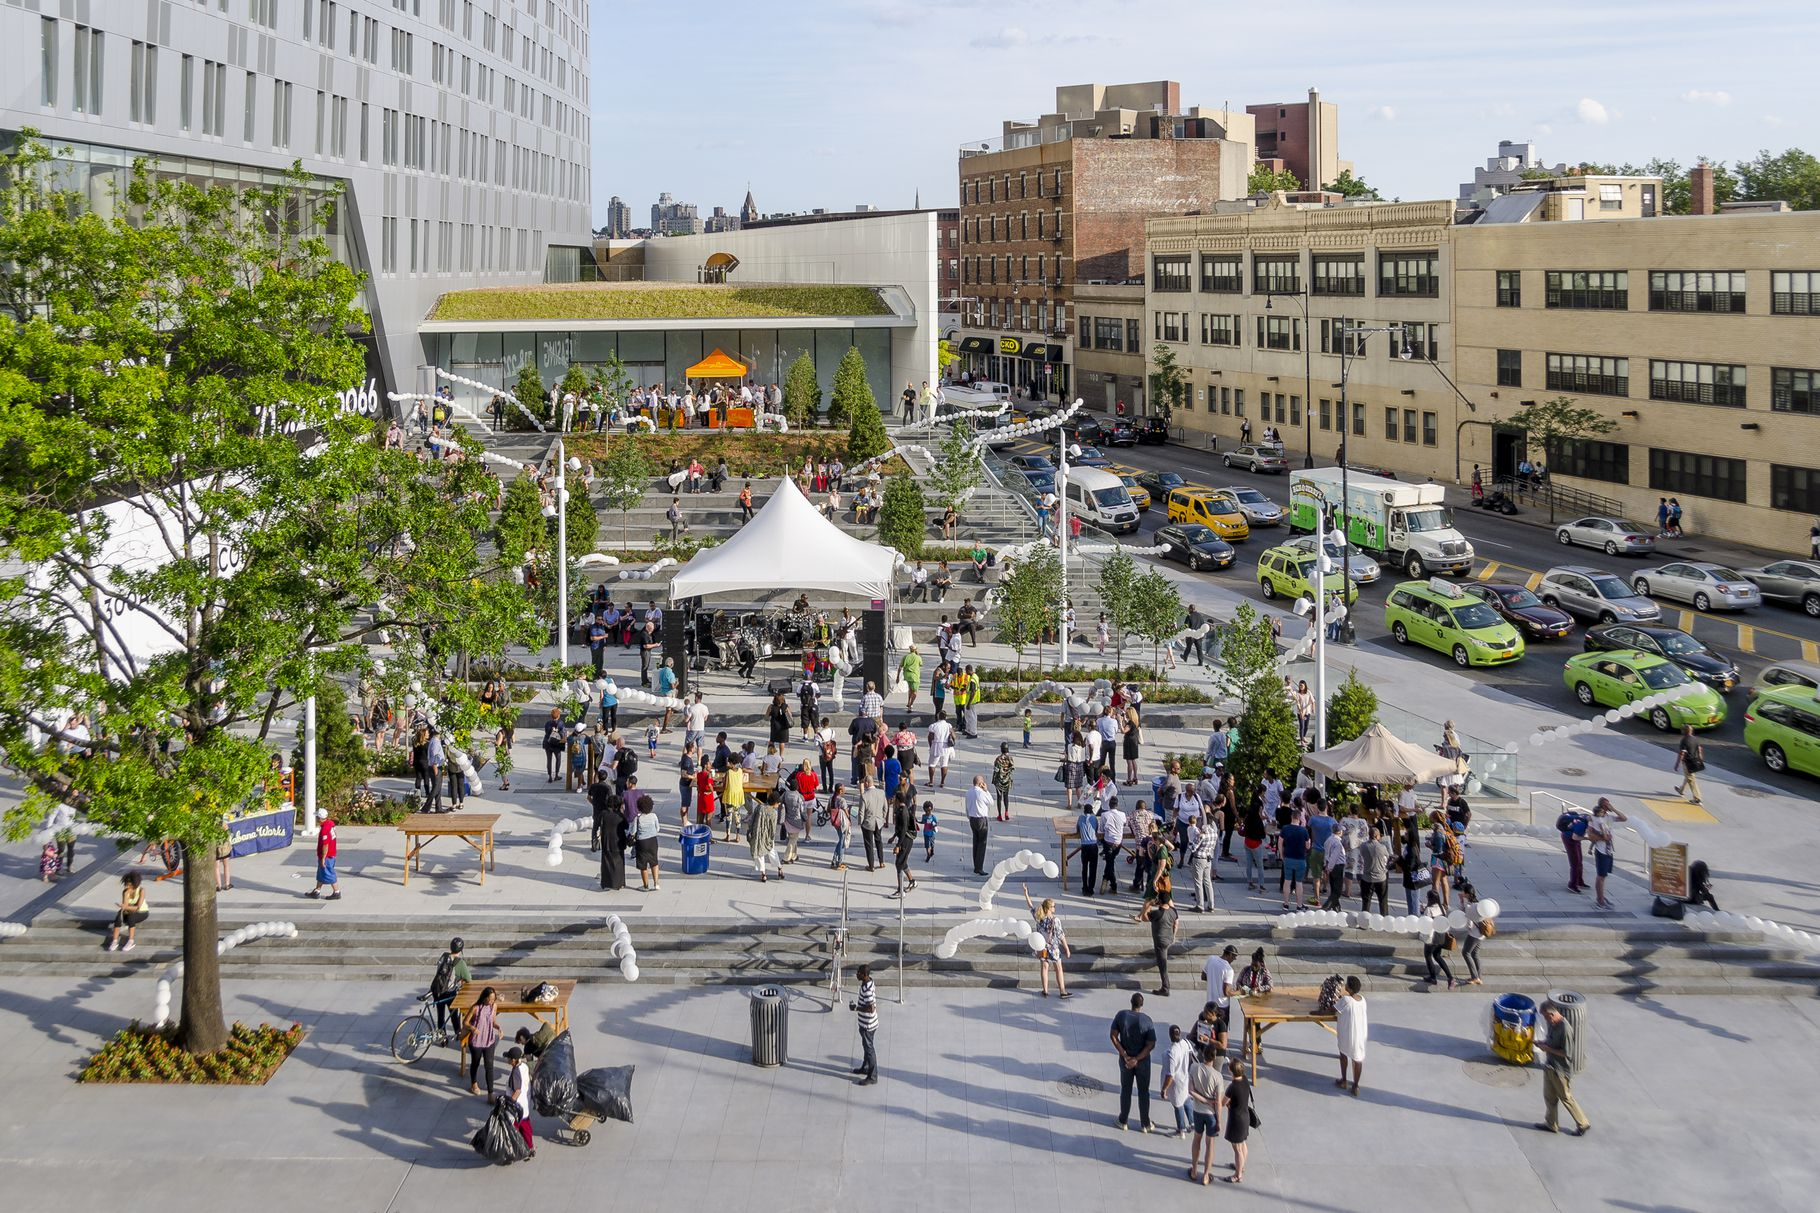 Two Trees Management Unveils 15,000 SF Public Plaza at 300 Ashland Place